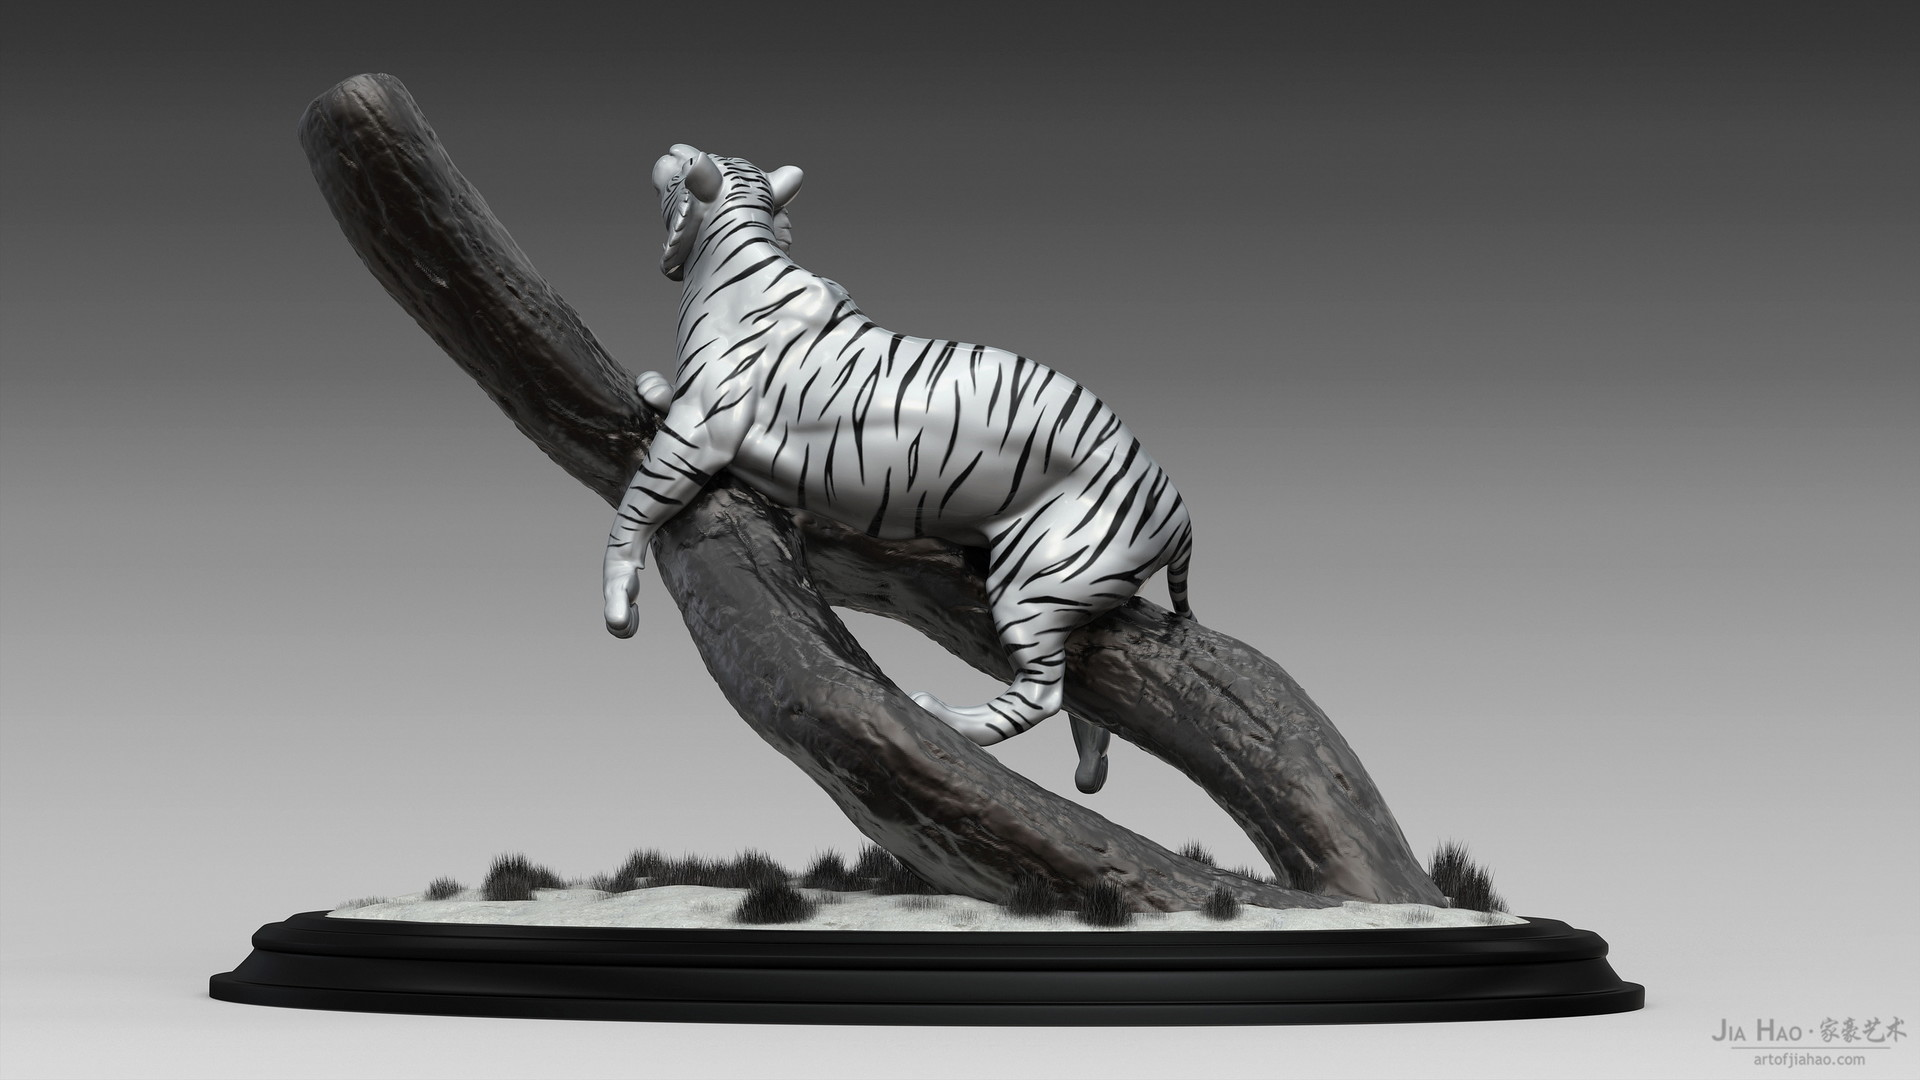 Jia hao tiger digitalsculpture 02